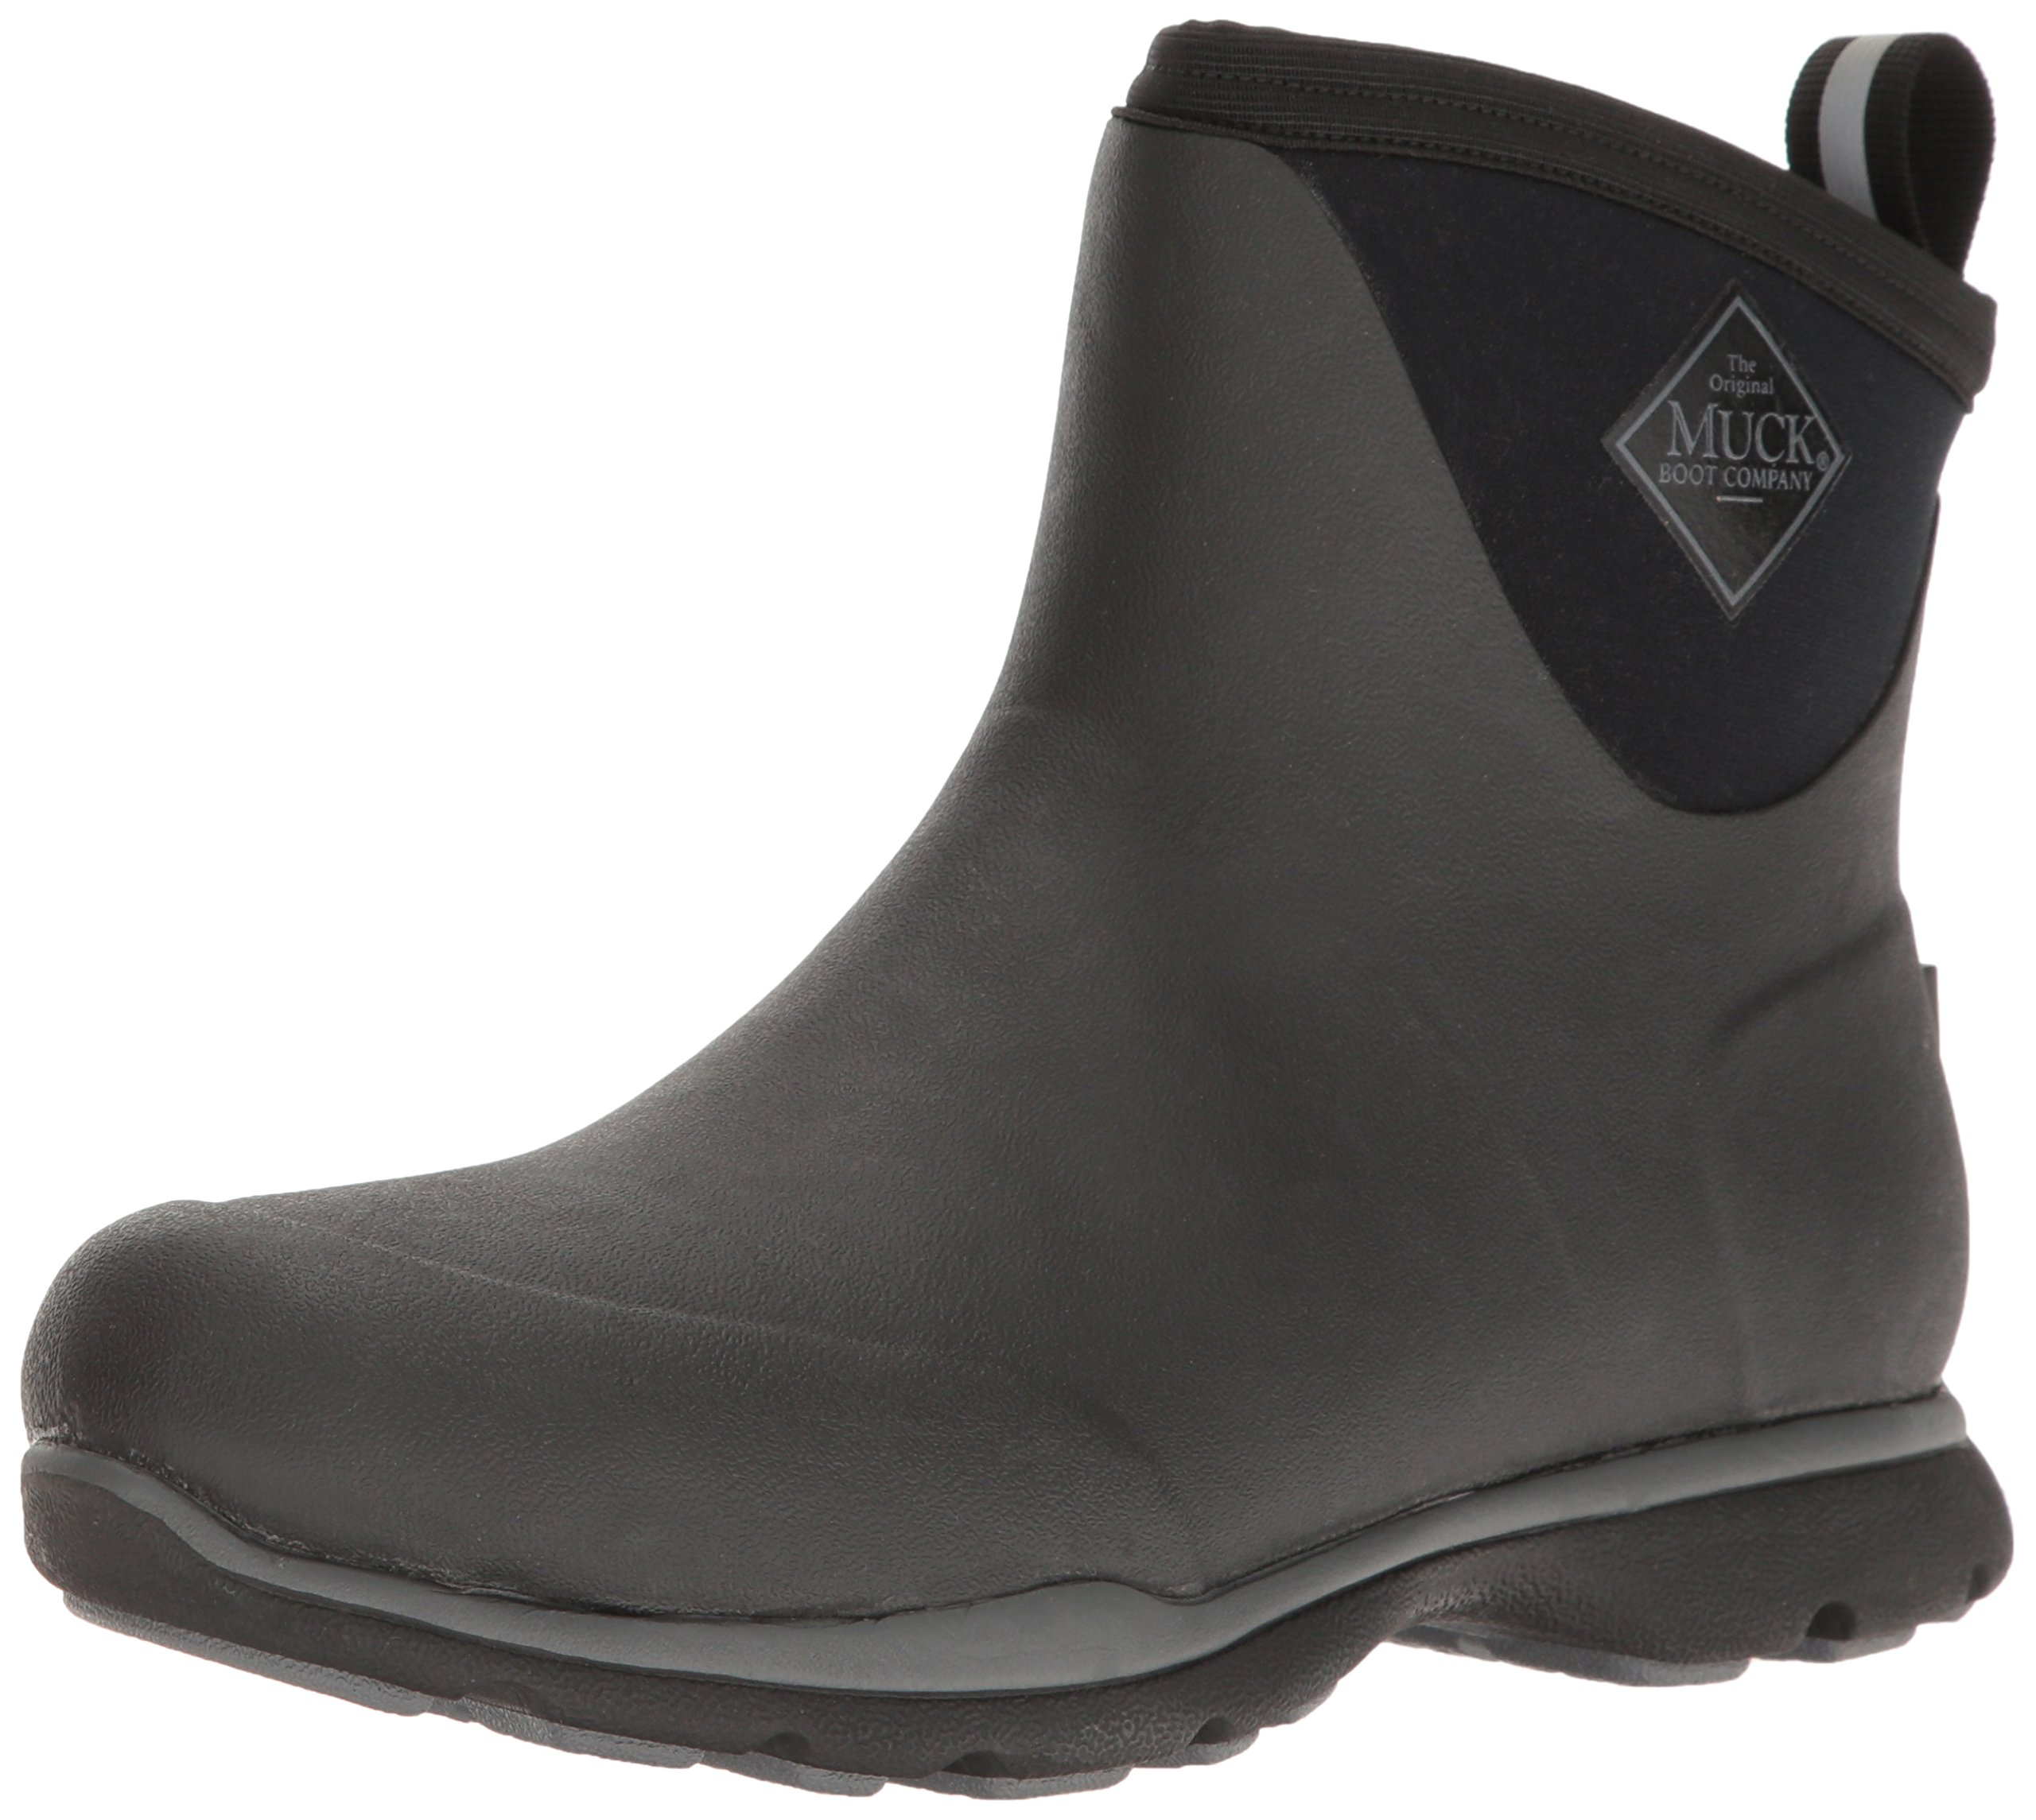 Muck Arctic Excursion Men's Rubber Winter Ankle Boots by Muck Boot